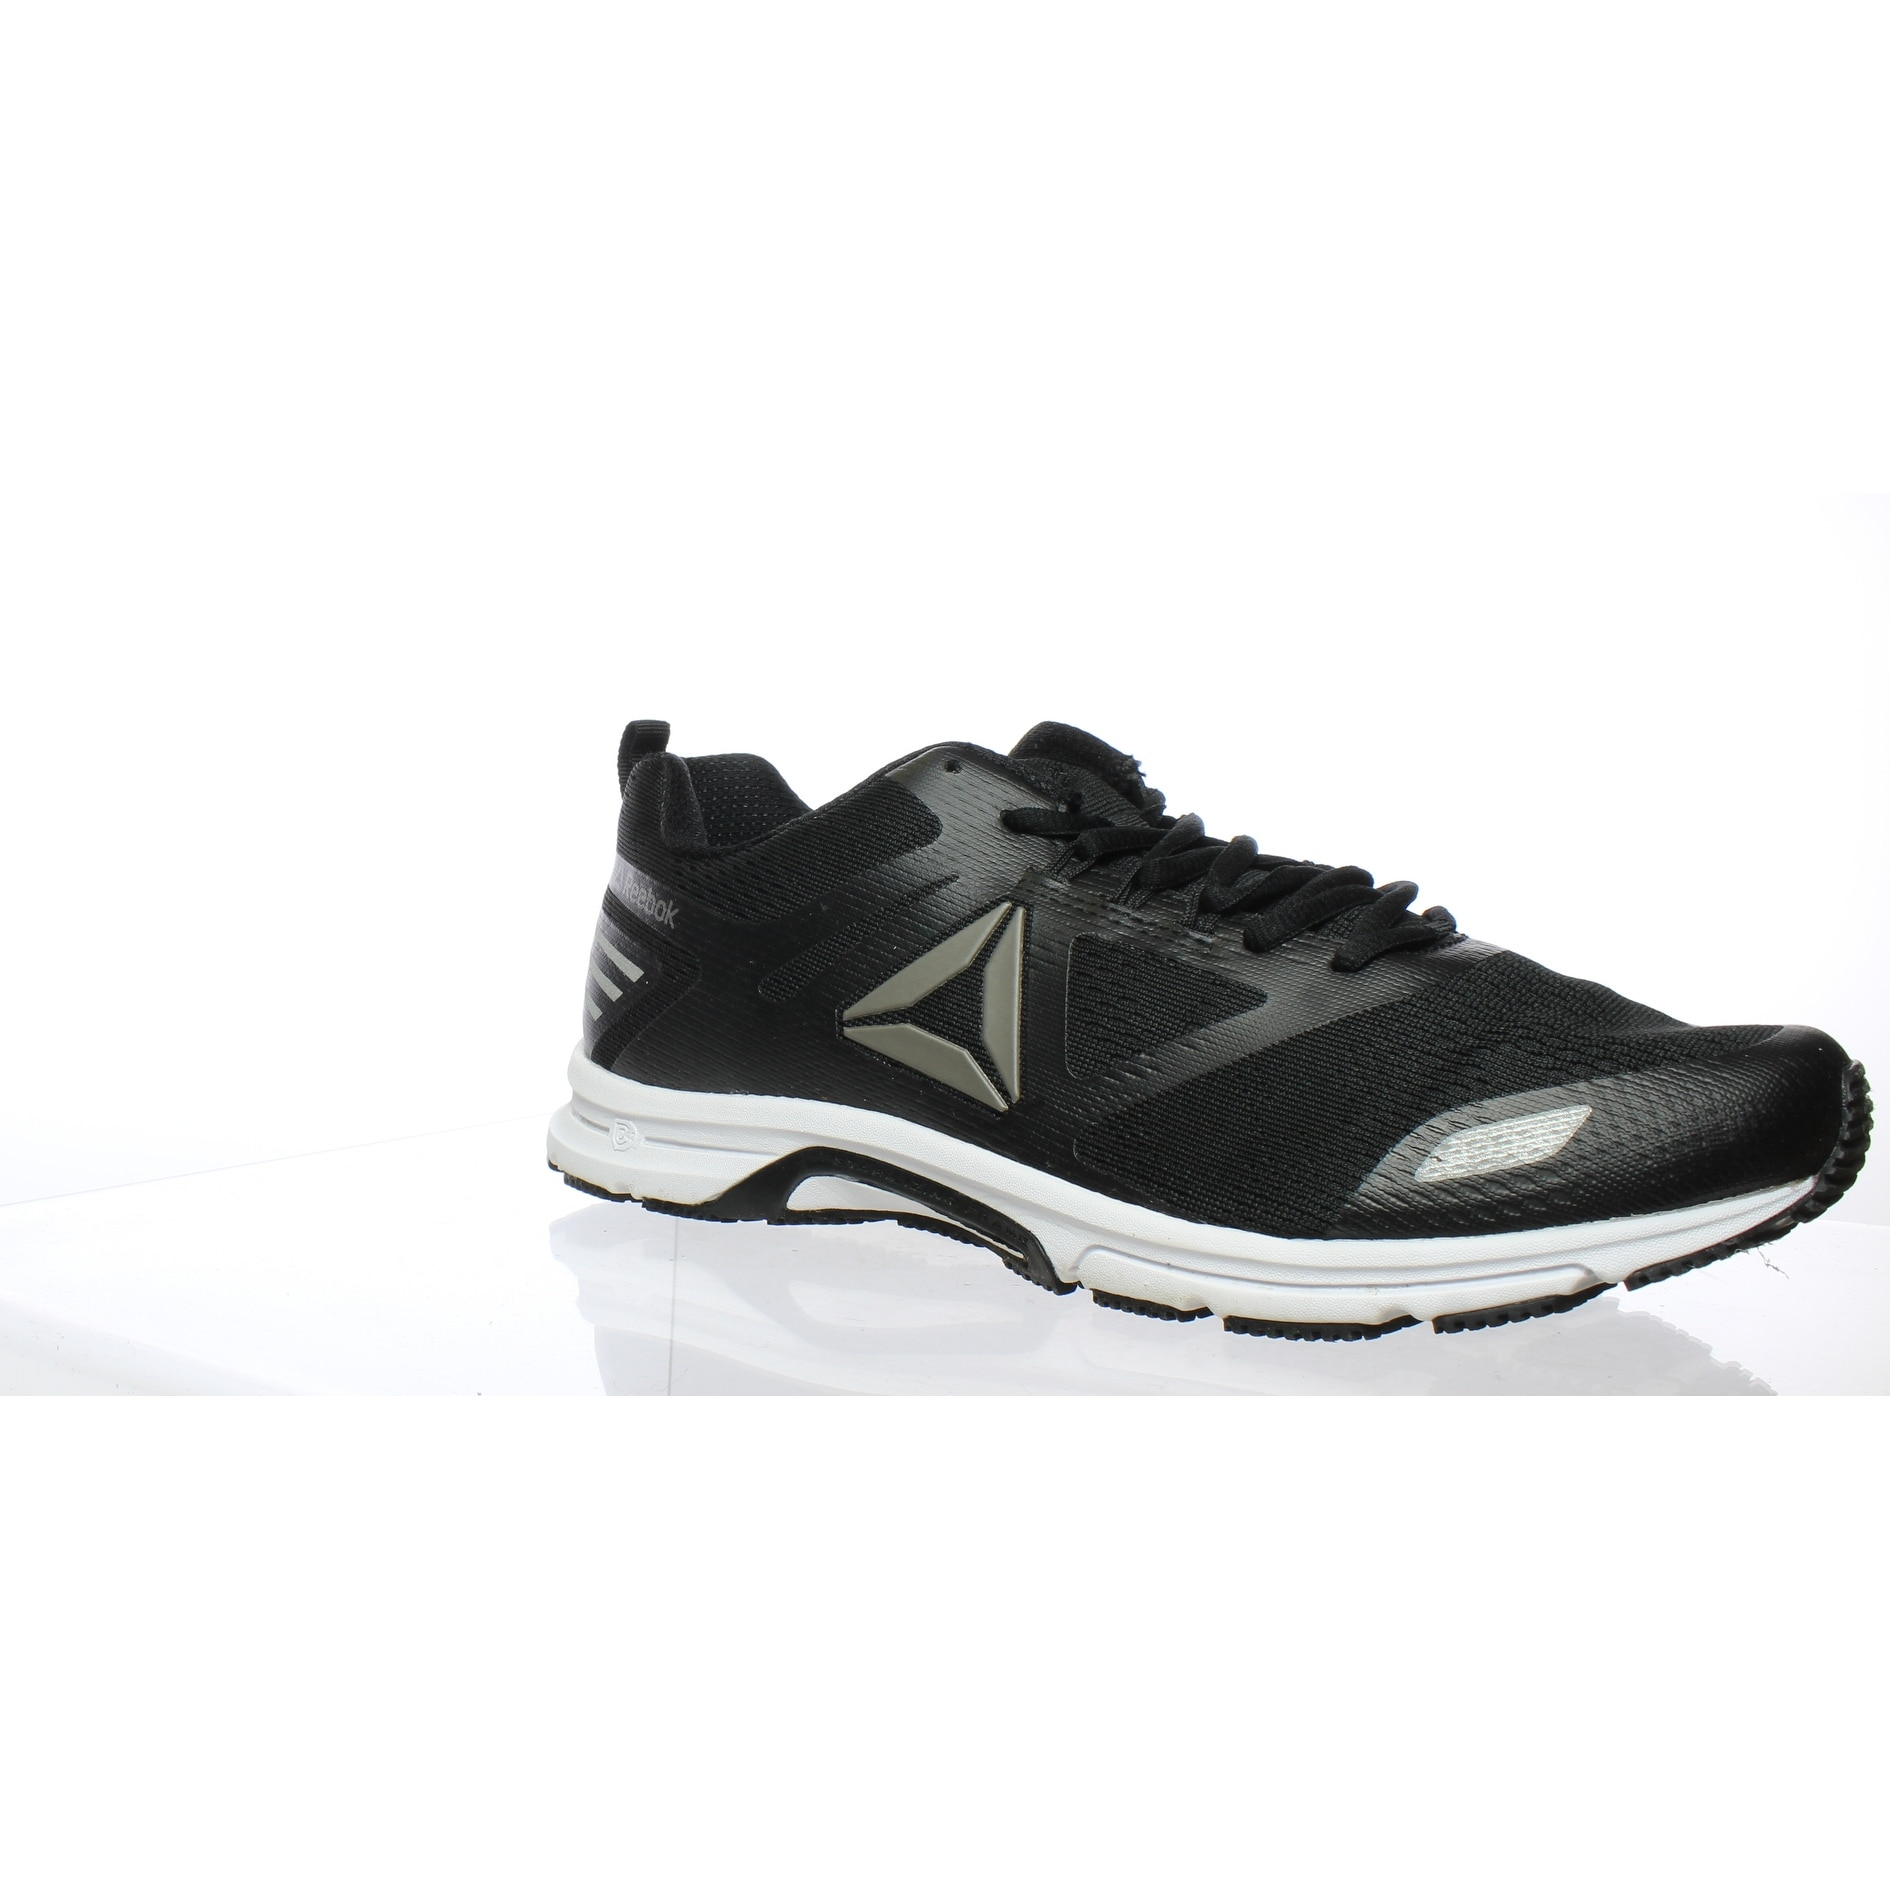 Running Shoes Size 10.5 (4E